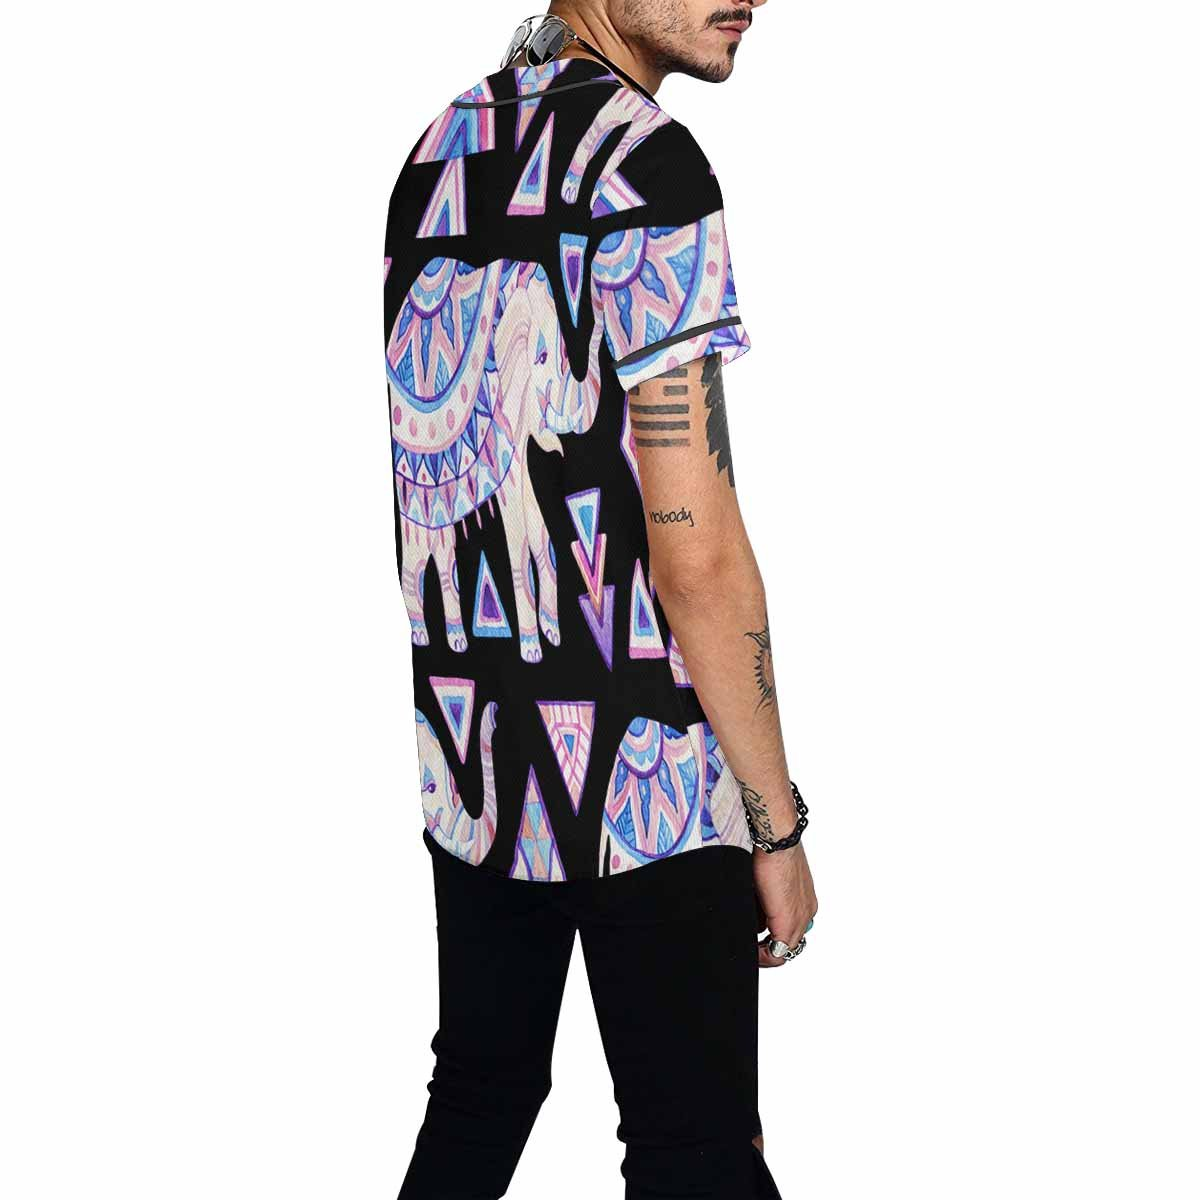 INTERESTPRINT Mens Button Down Baseball Jersey Watercolor Indian Elephant